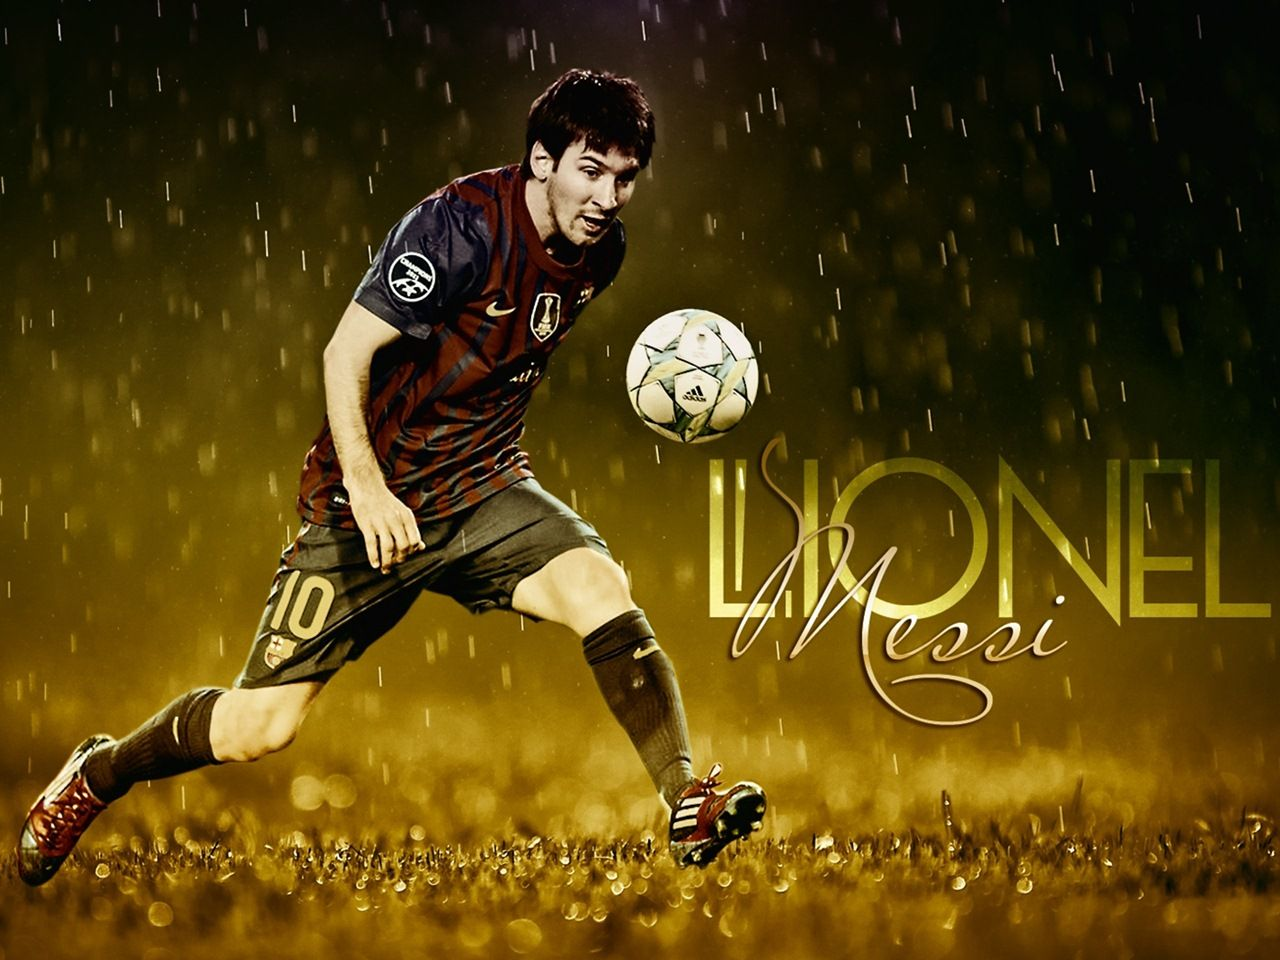 Lionel Messi K Wallpapers Hd Wallpapers 1280x960